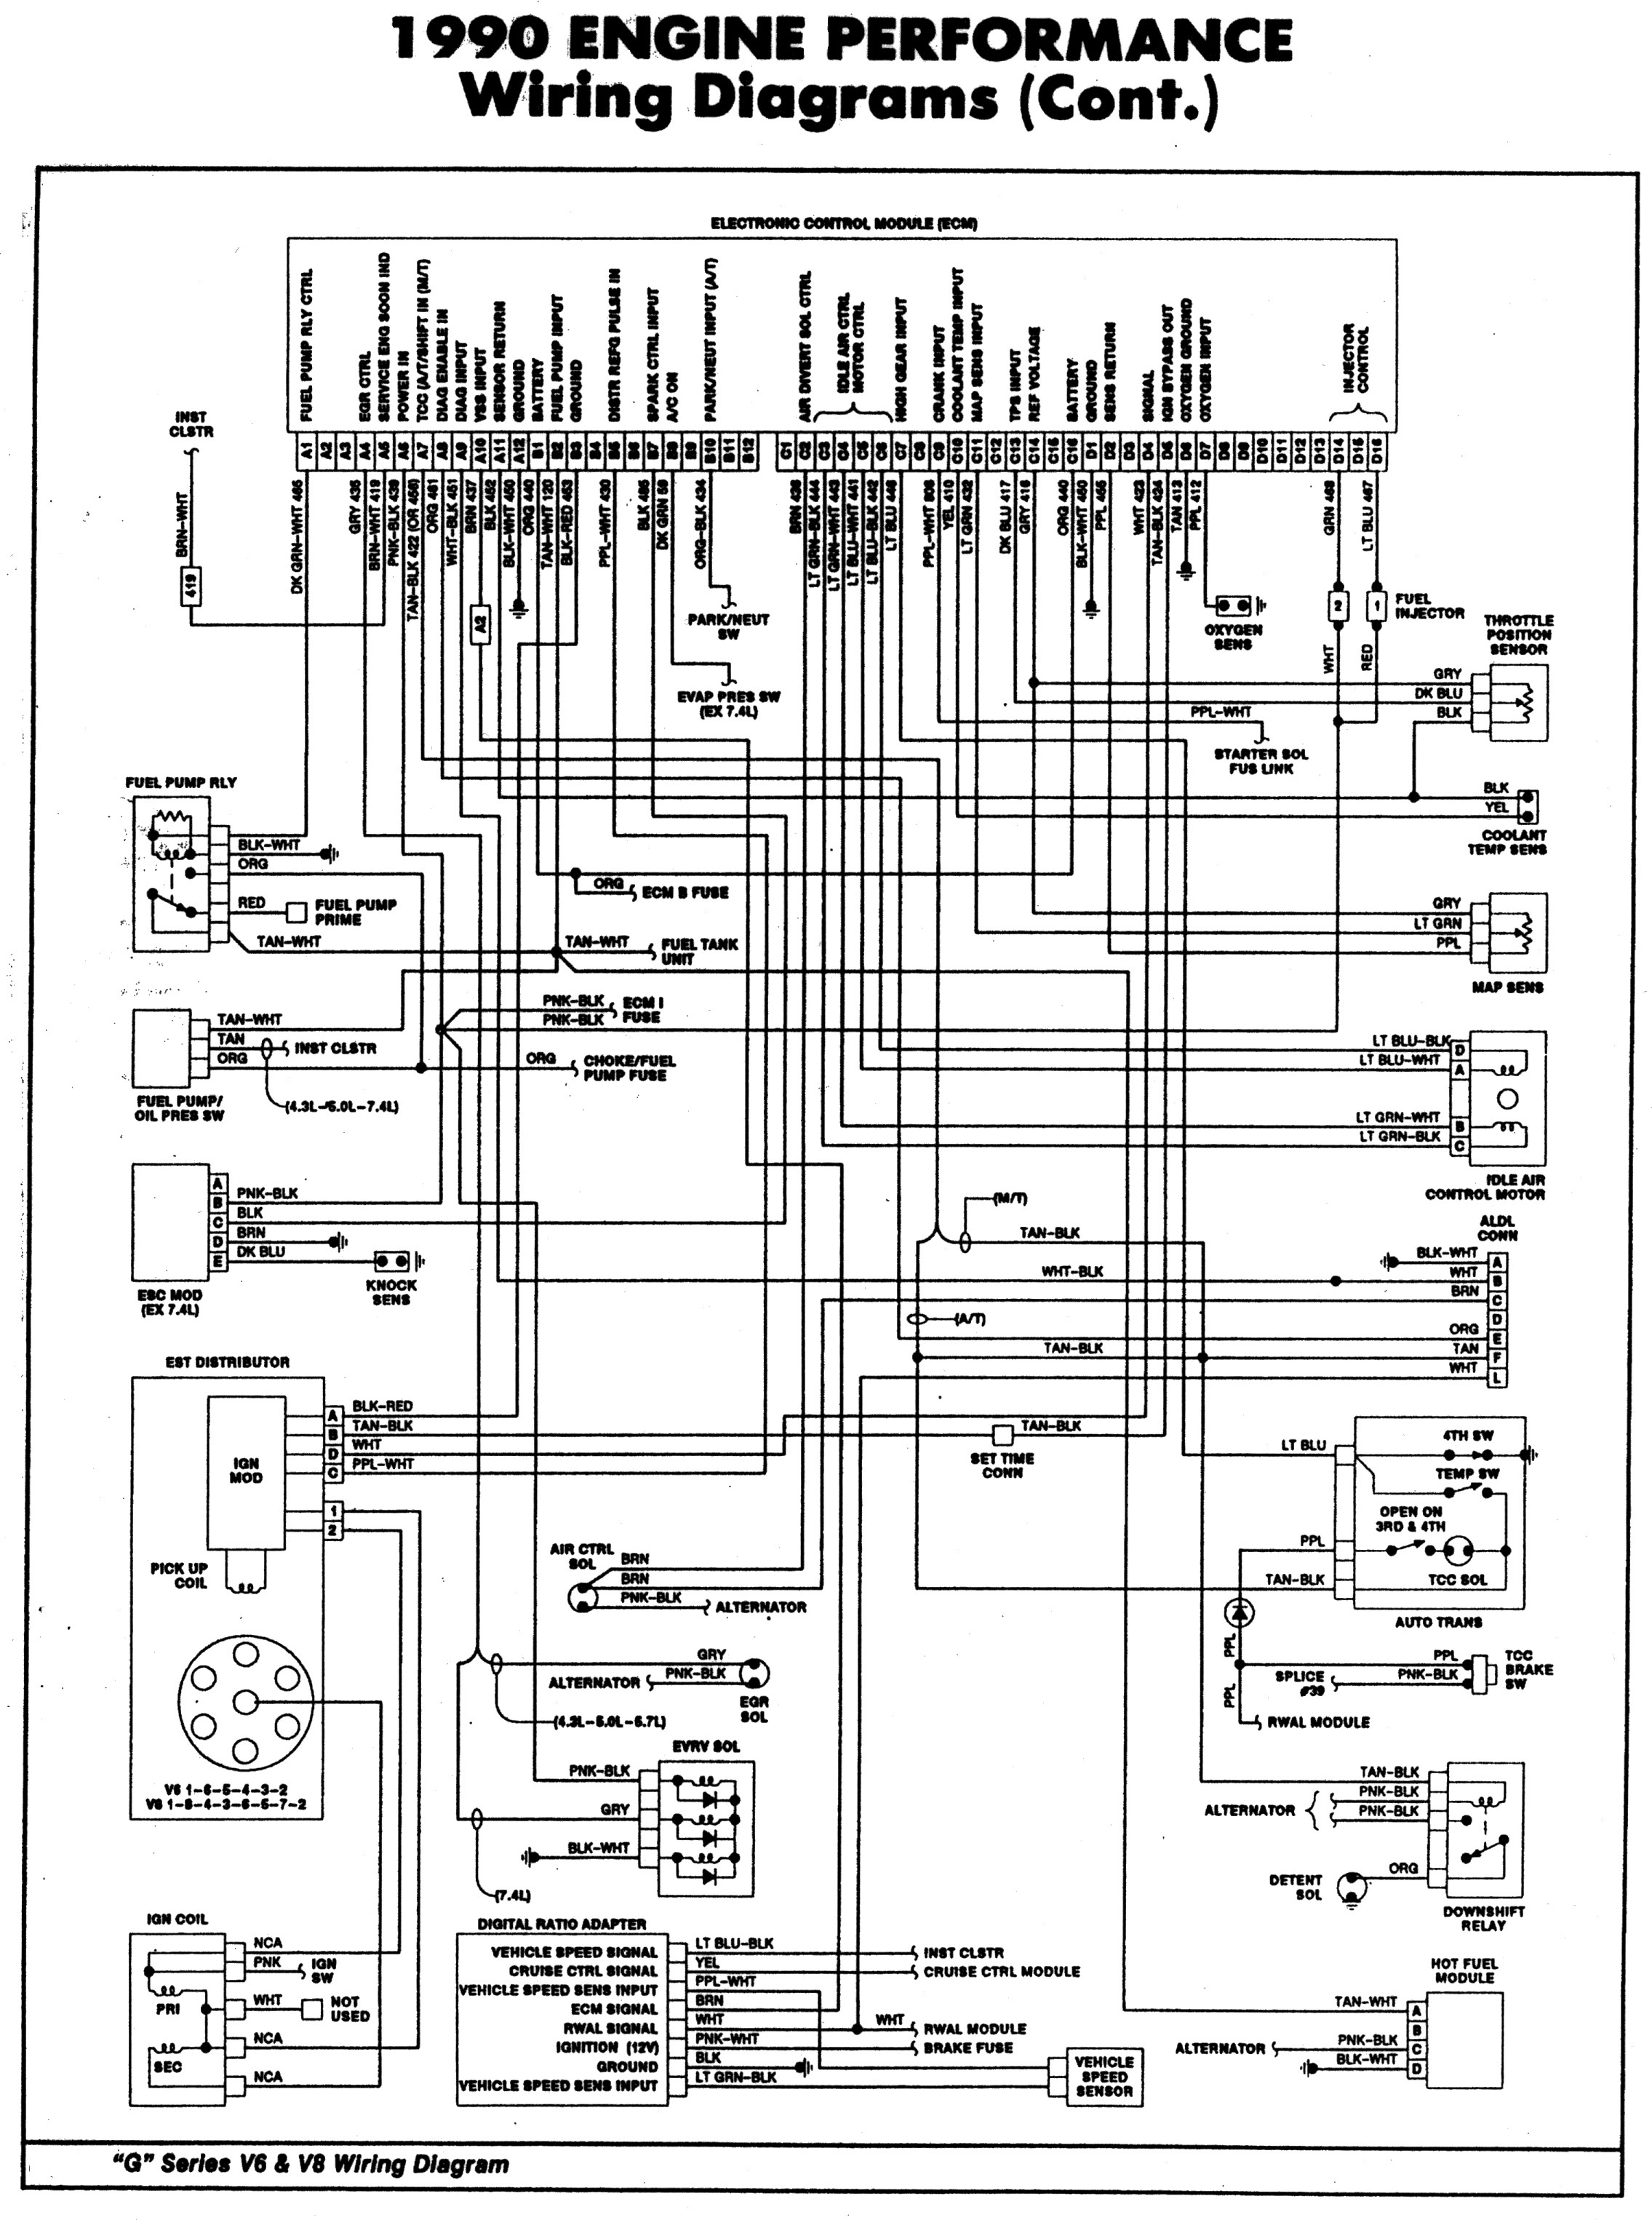 94 silverado fuse box wiring diagram img 1994 chev pick up fuse diagram autos weblog wiring [ 2271 x 3051 Pixel ]